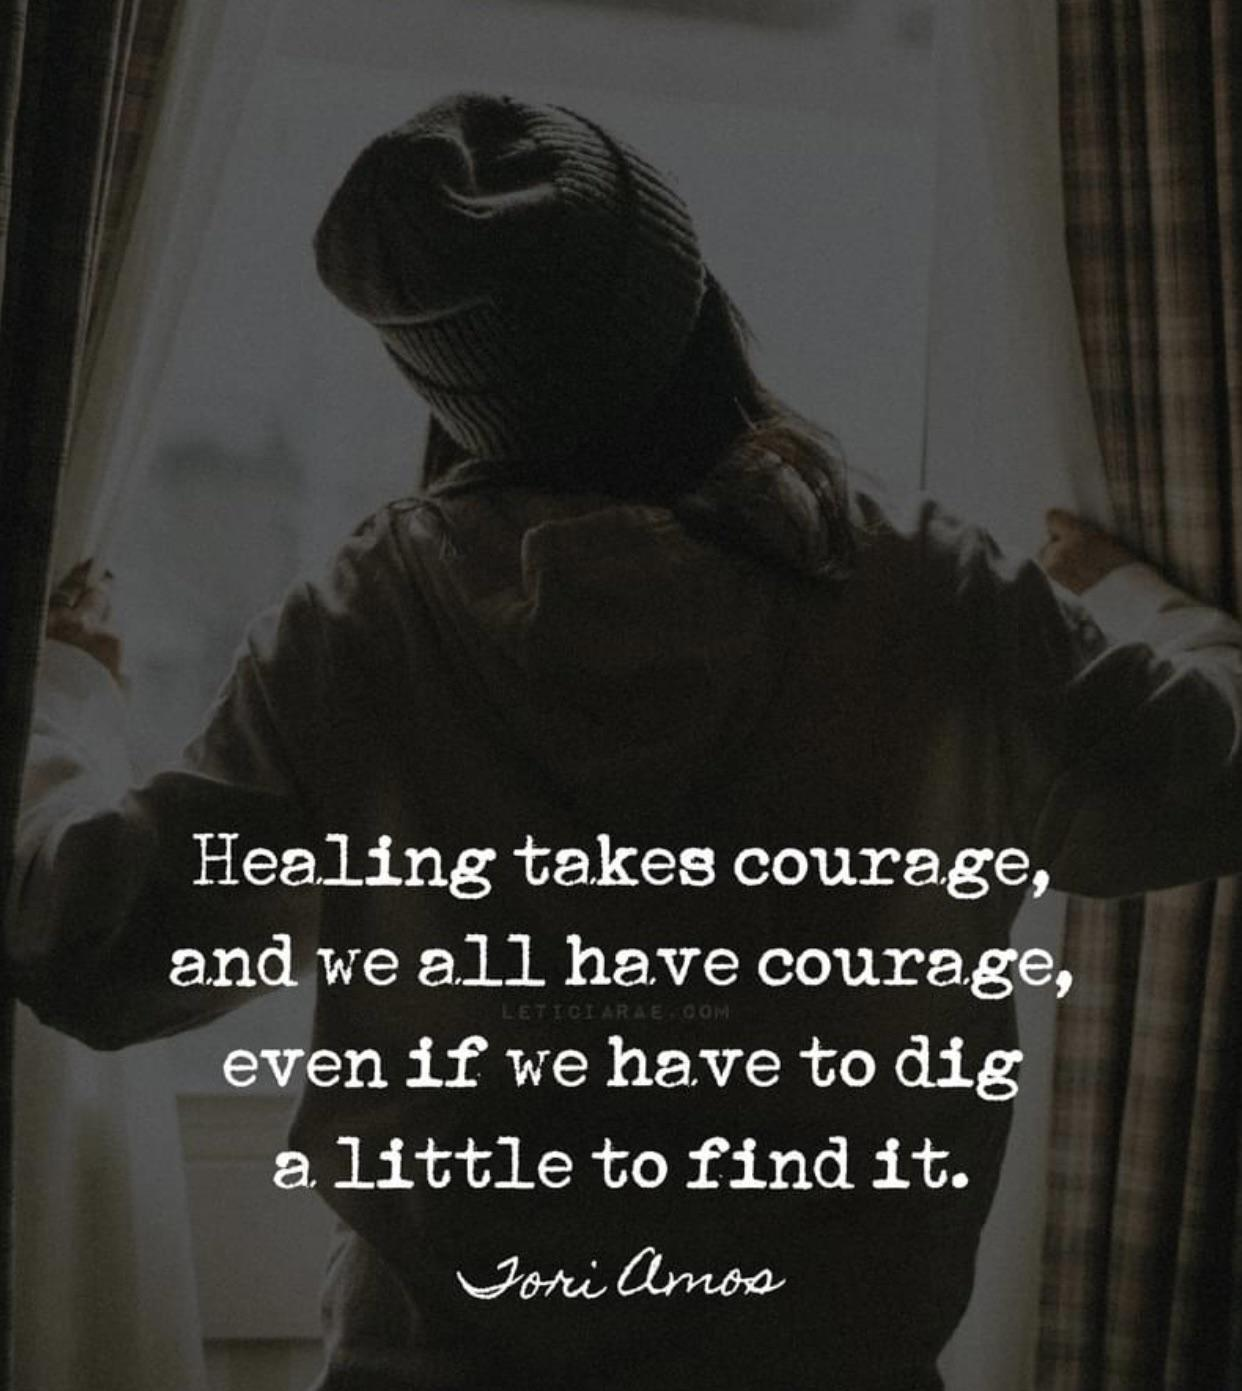 [Image] Courage. We all have it.